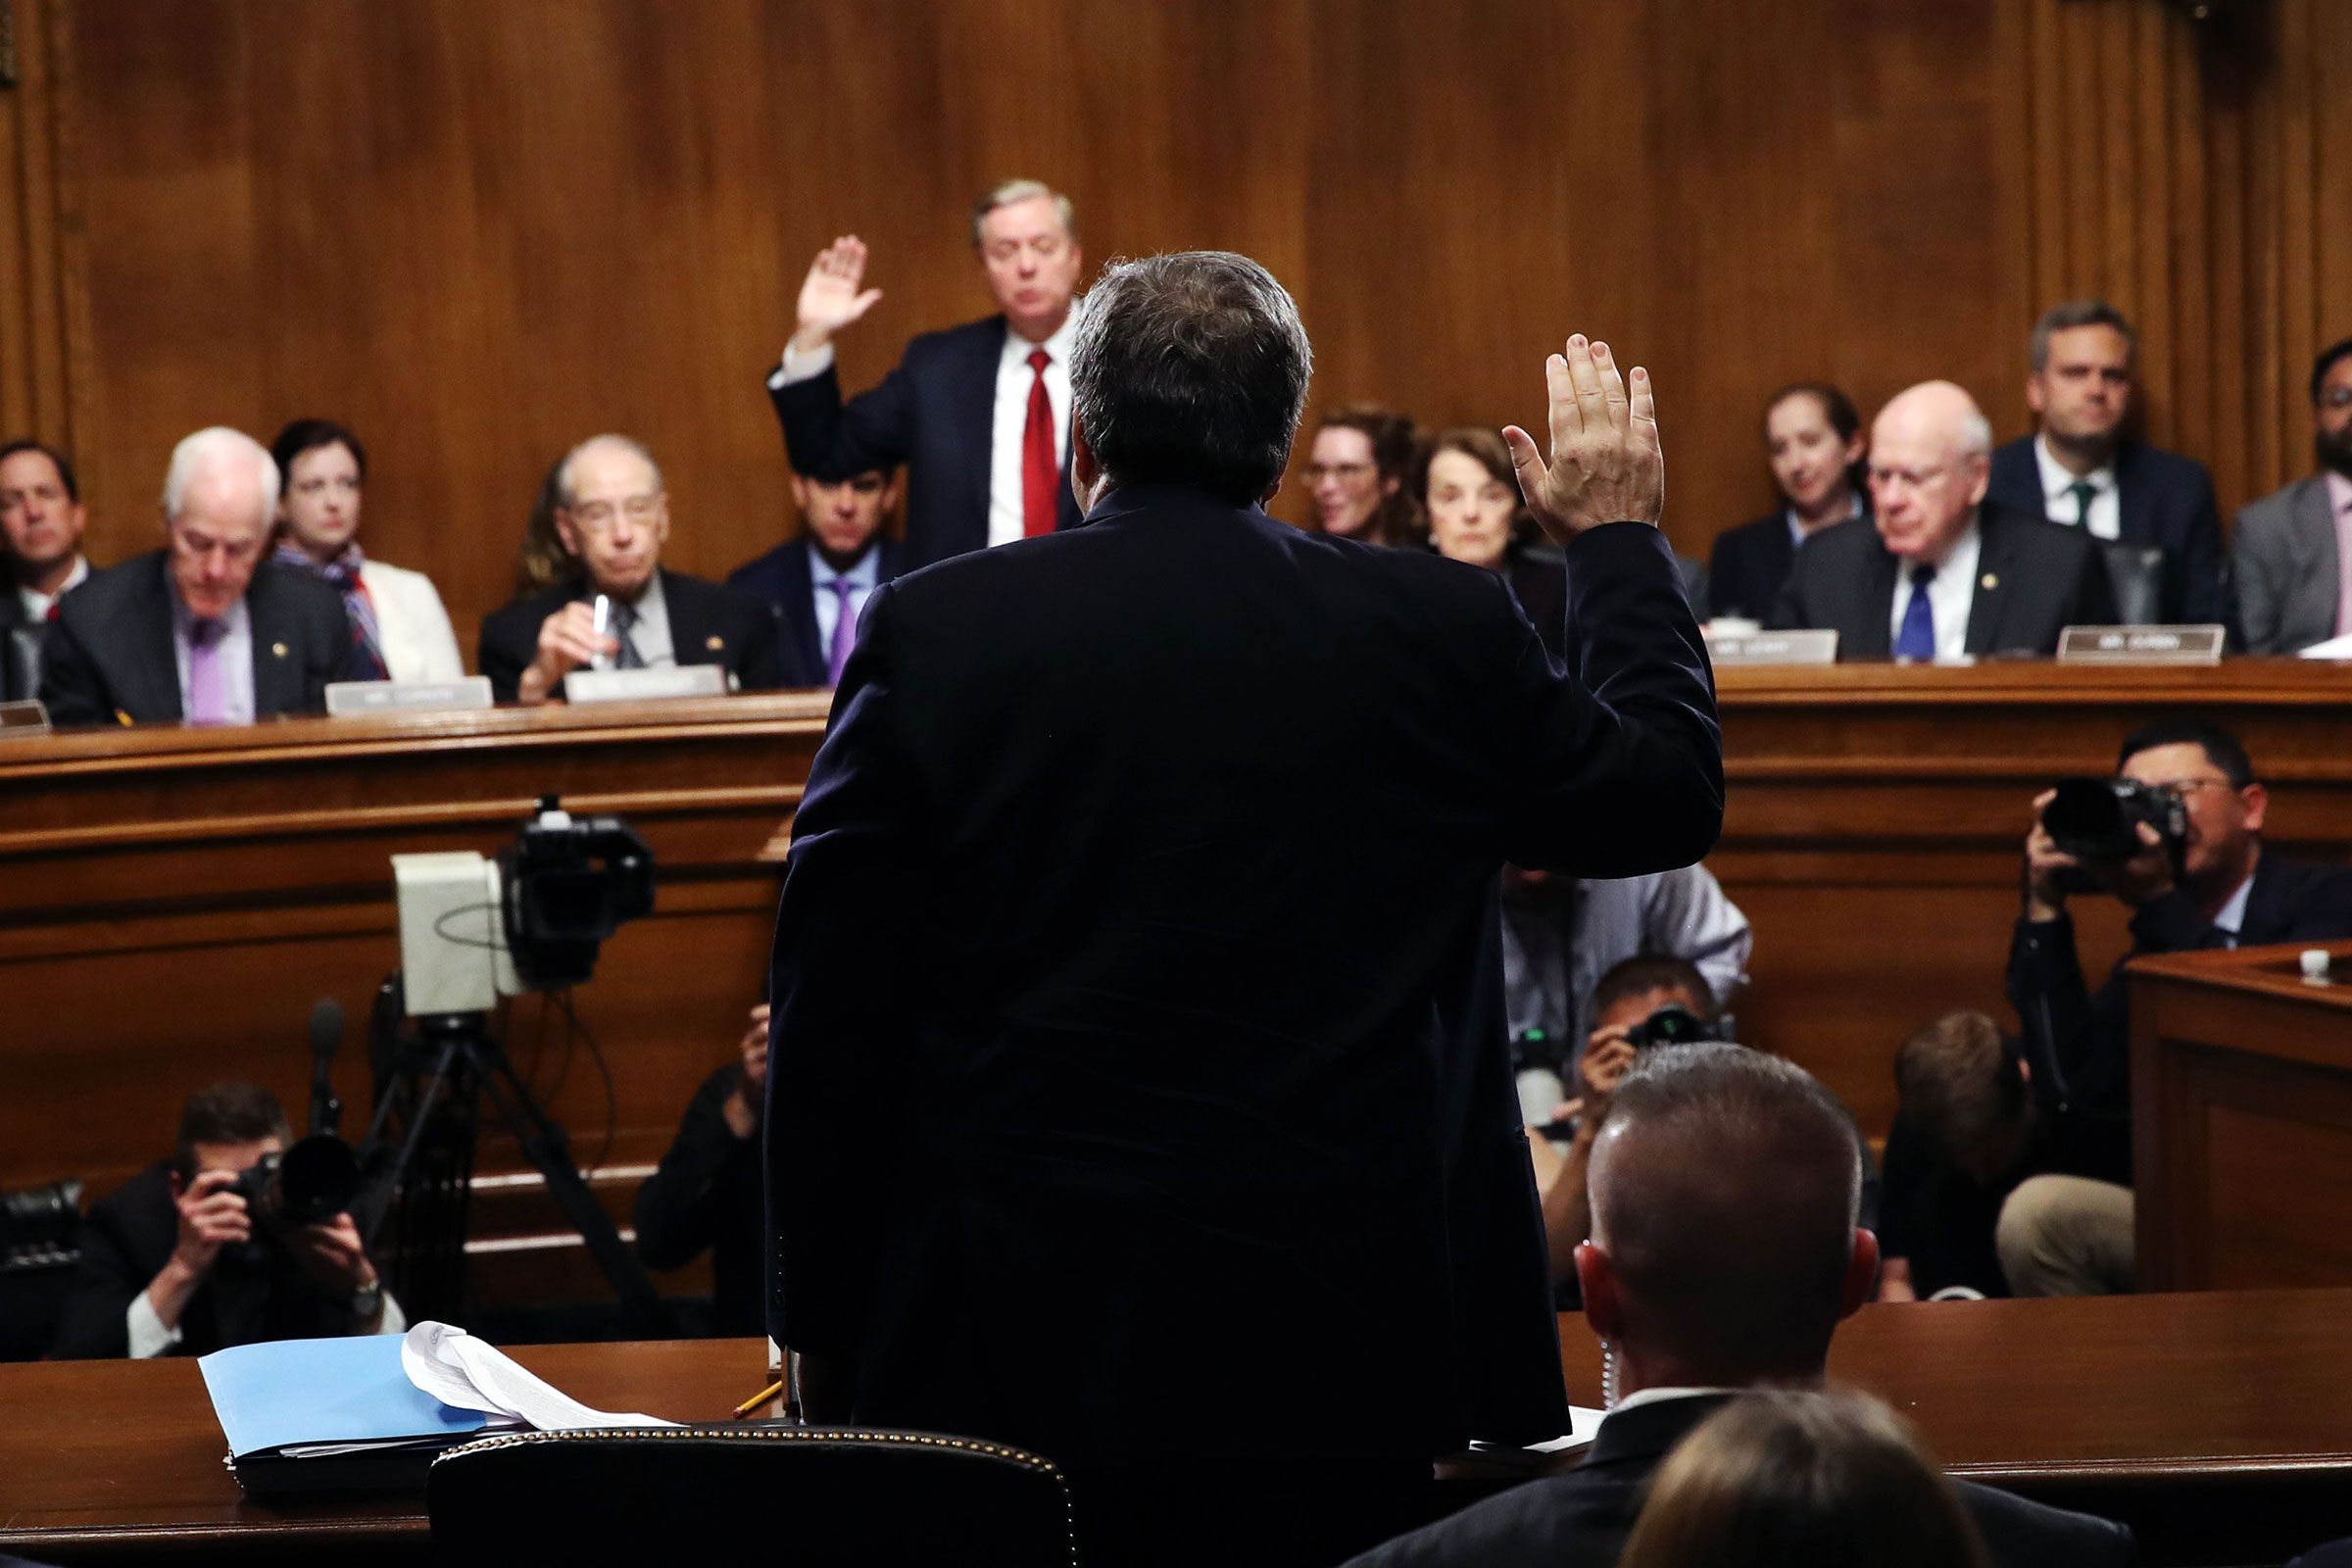 Attorney General William Barr is sworn in to testify about the Mueller report before the Senate on May 1